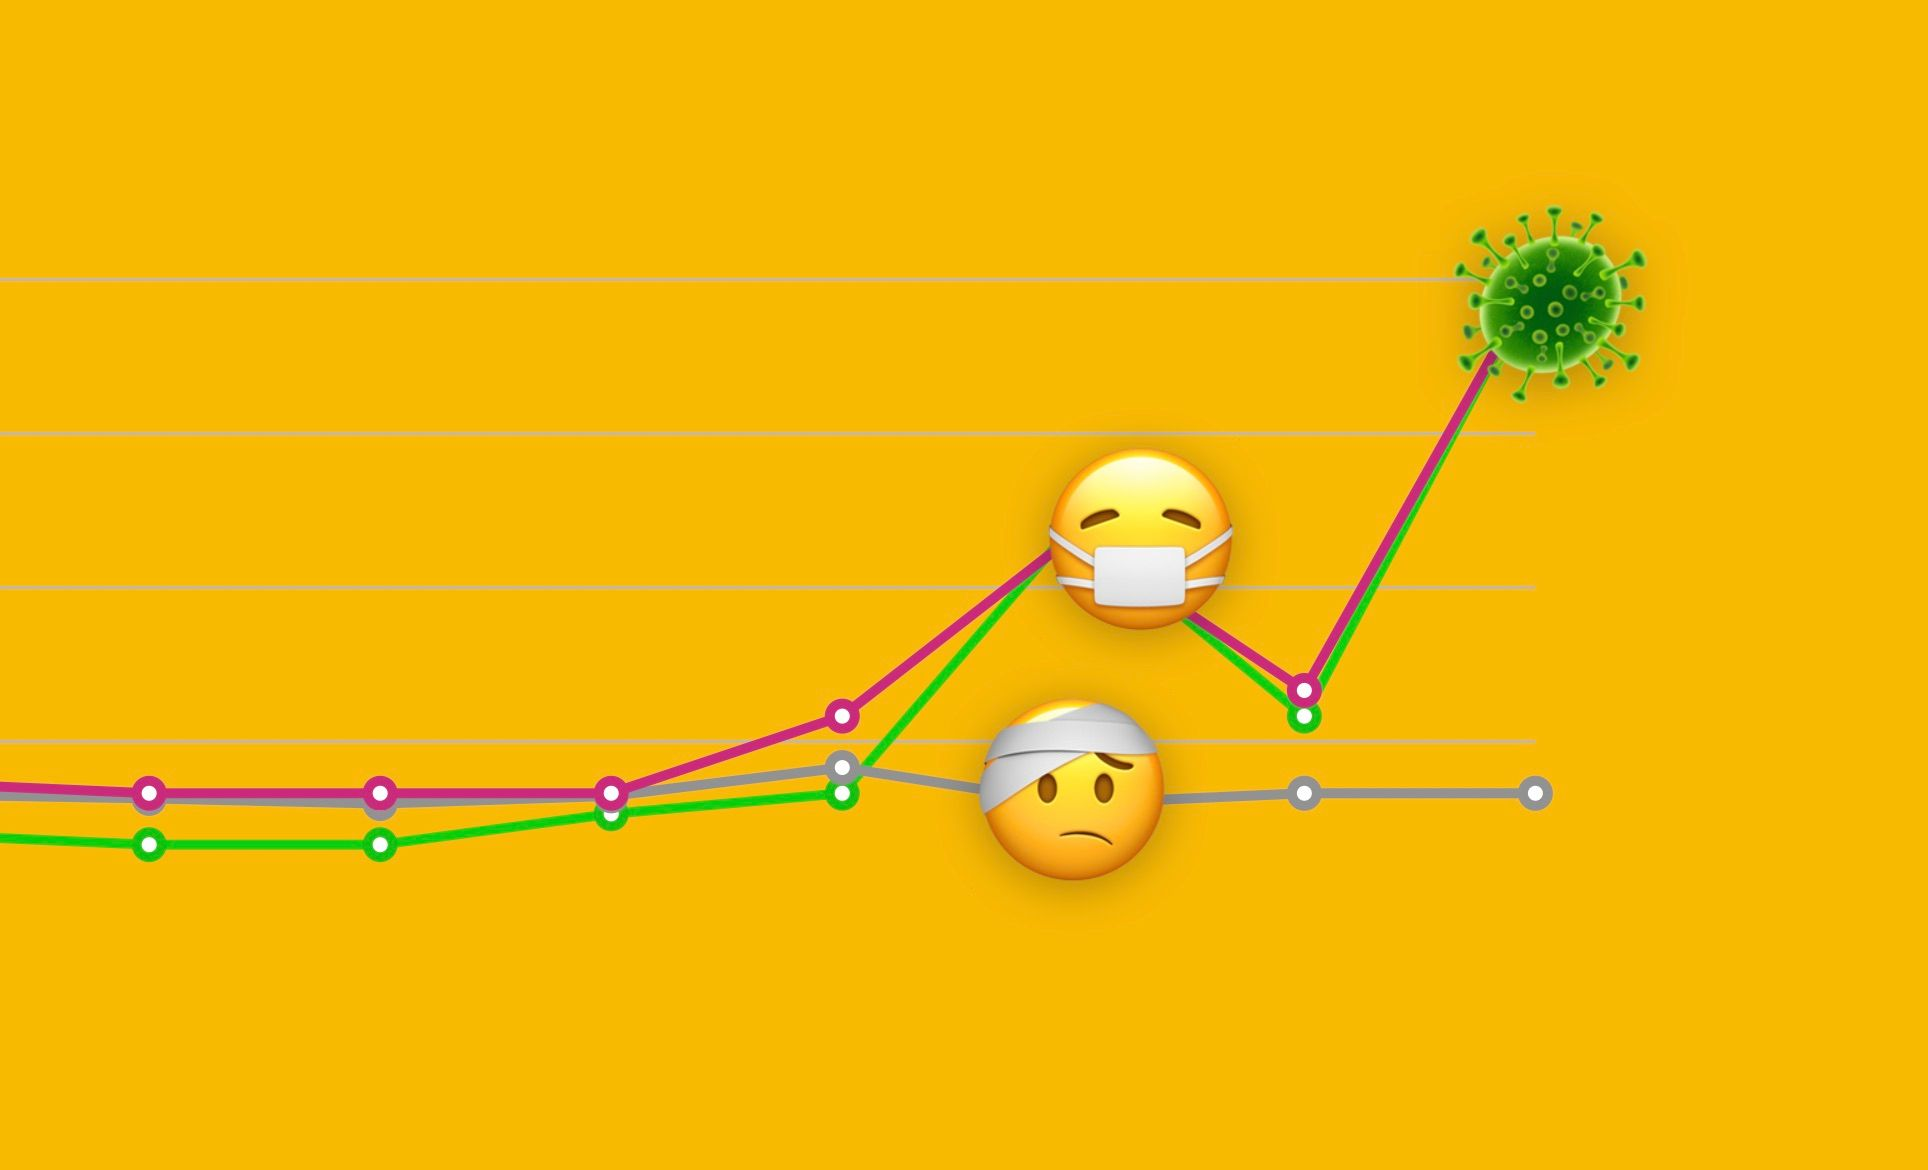 Spread of the Coronavirus Emoji